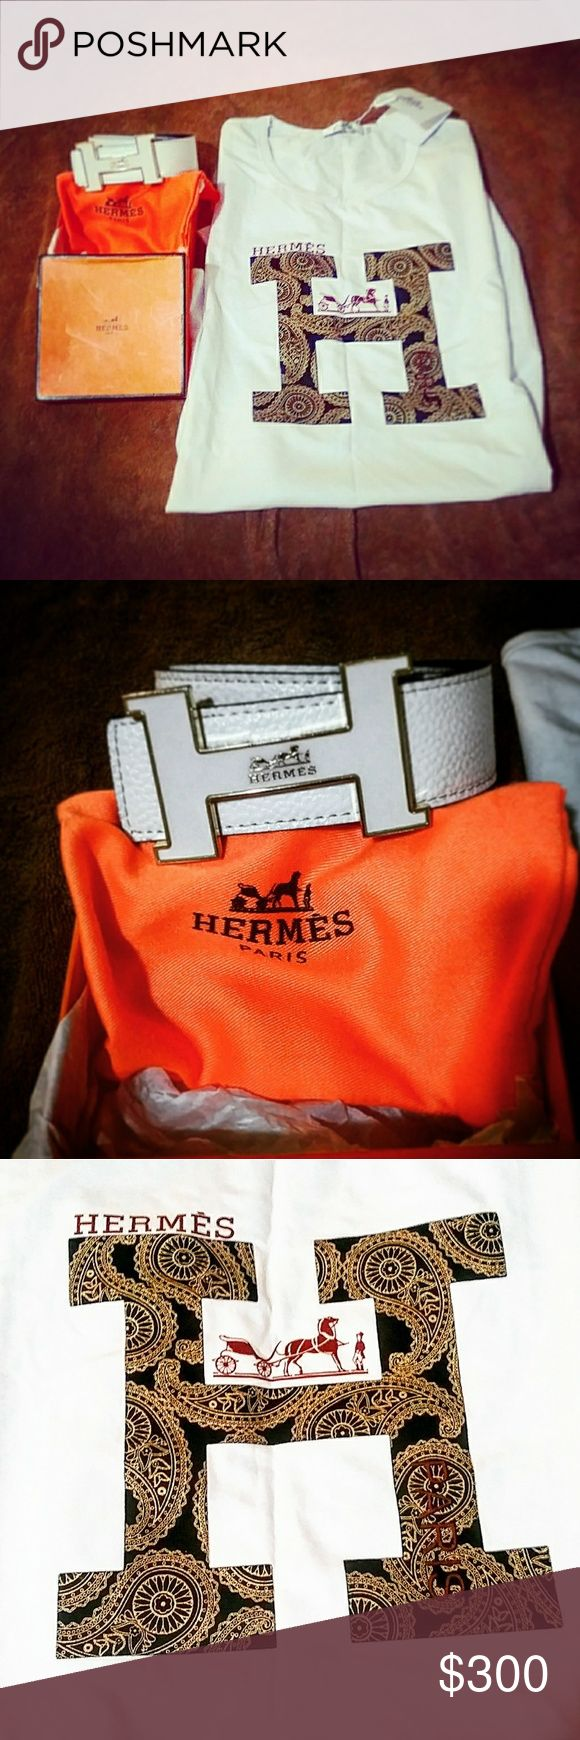 Hermes T-Shirt original logo with Whte Belt The T-Shirt White with golden bandana print Hermes logo an White leather Hermes White H buckle real leather engraved to show authenticity also on T-Shirt with tag still applied no wear. Package Deal price 350$ Belt 200$ solo T-Shirt 175$ solo Hermes Shirts Tees - Short Sleeve